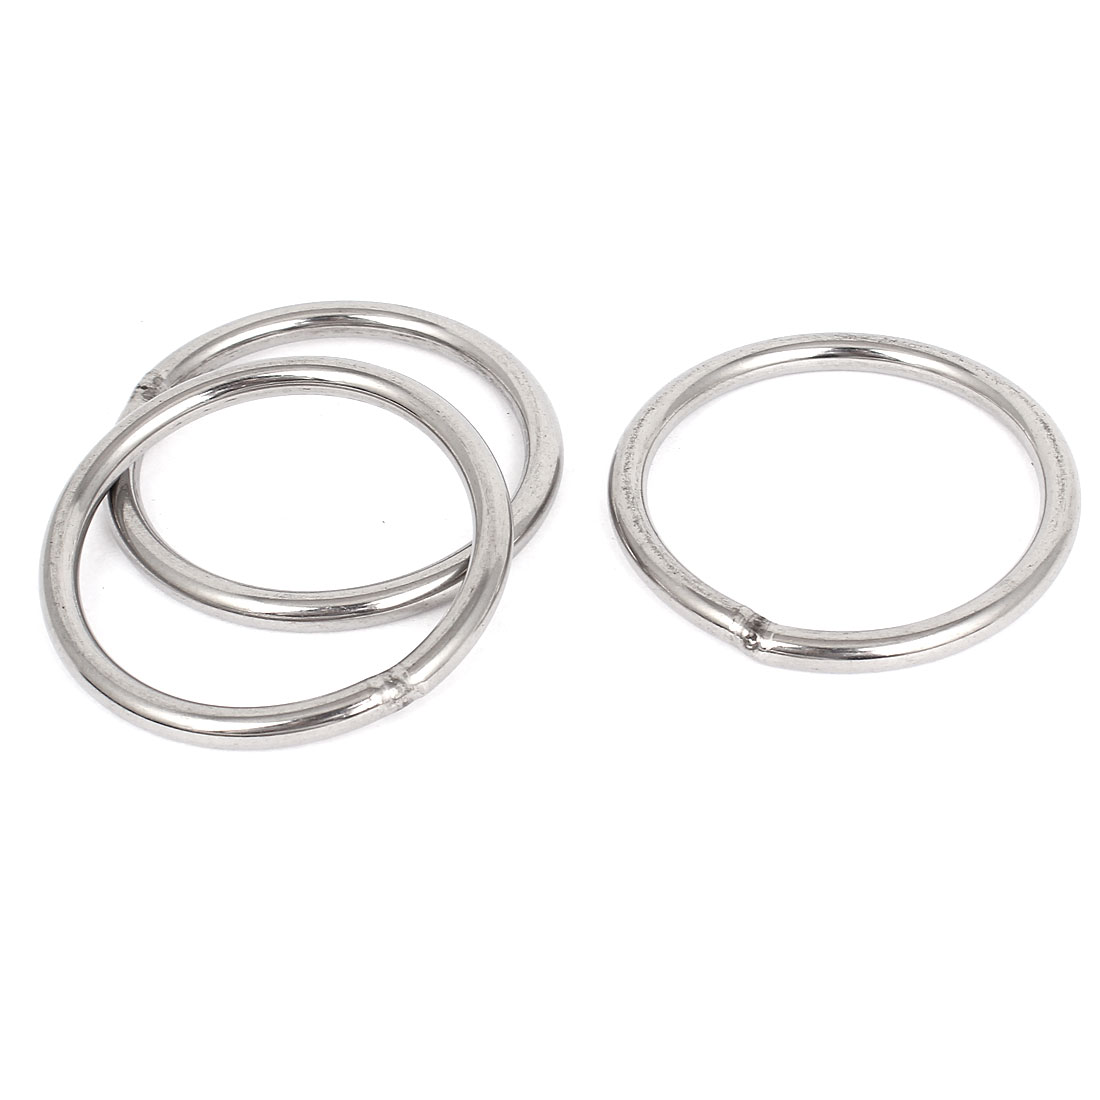 70mm x 6mm Stainless Steel Webbing Strapping Welded O Rings 3 Pcs